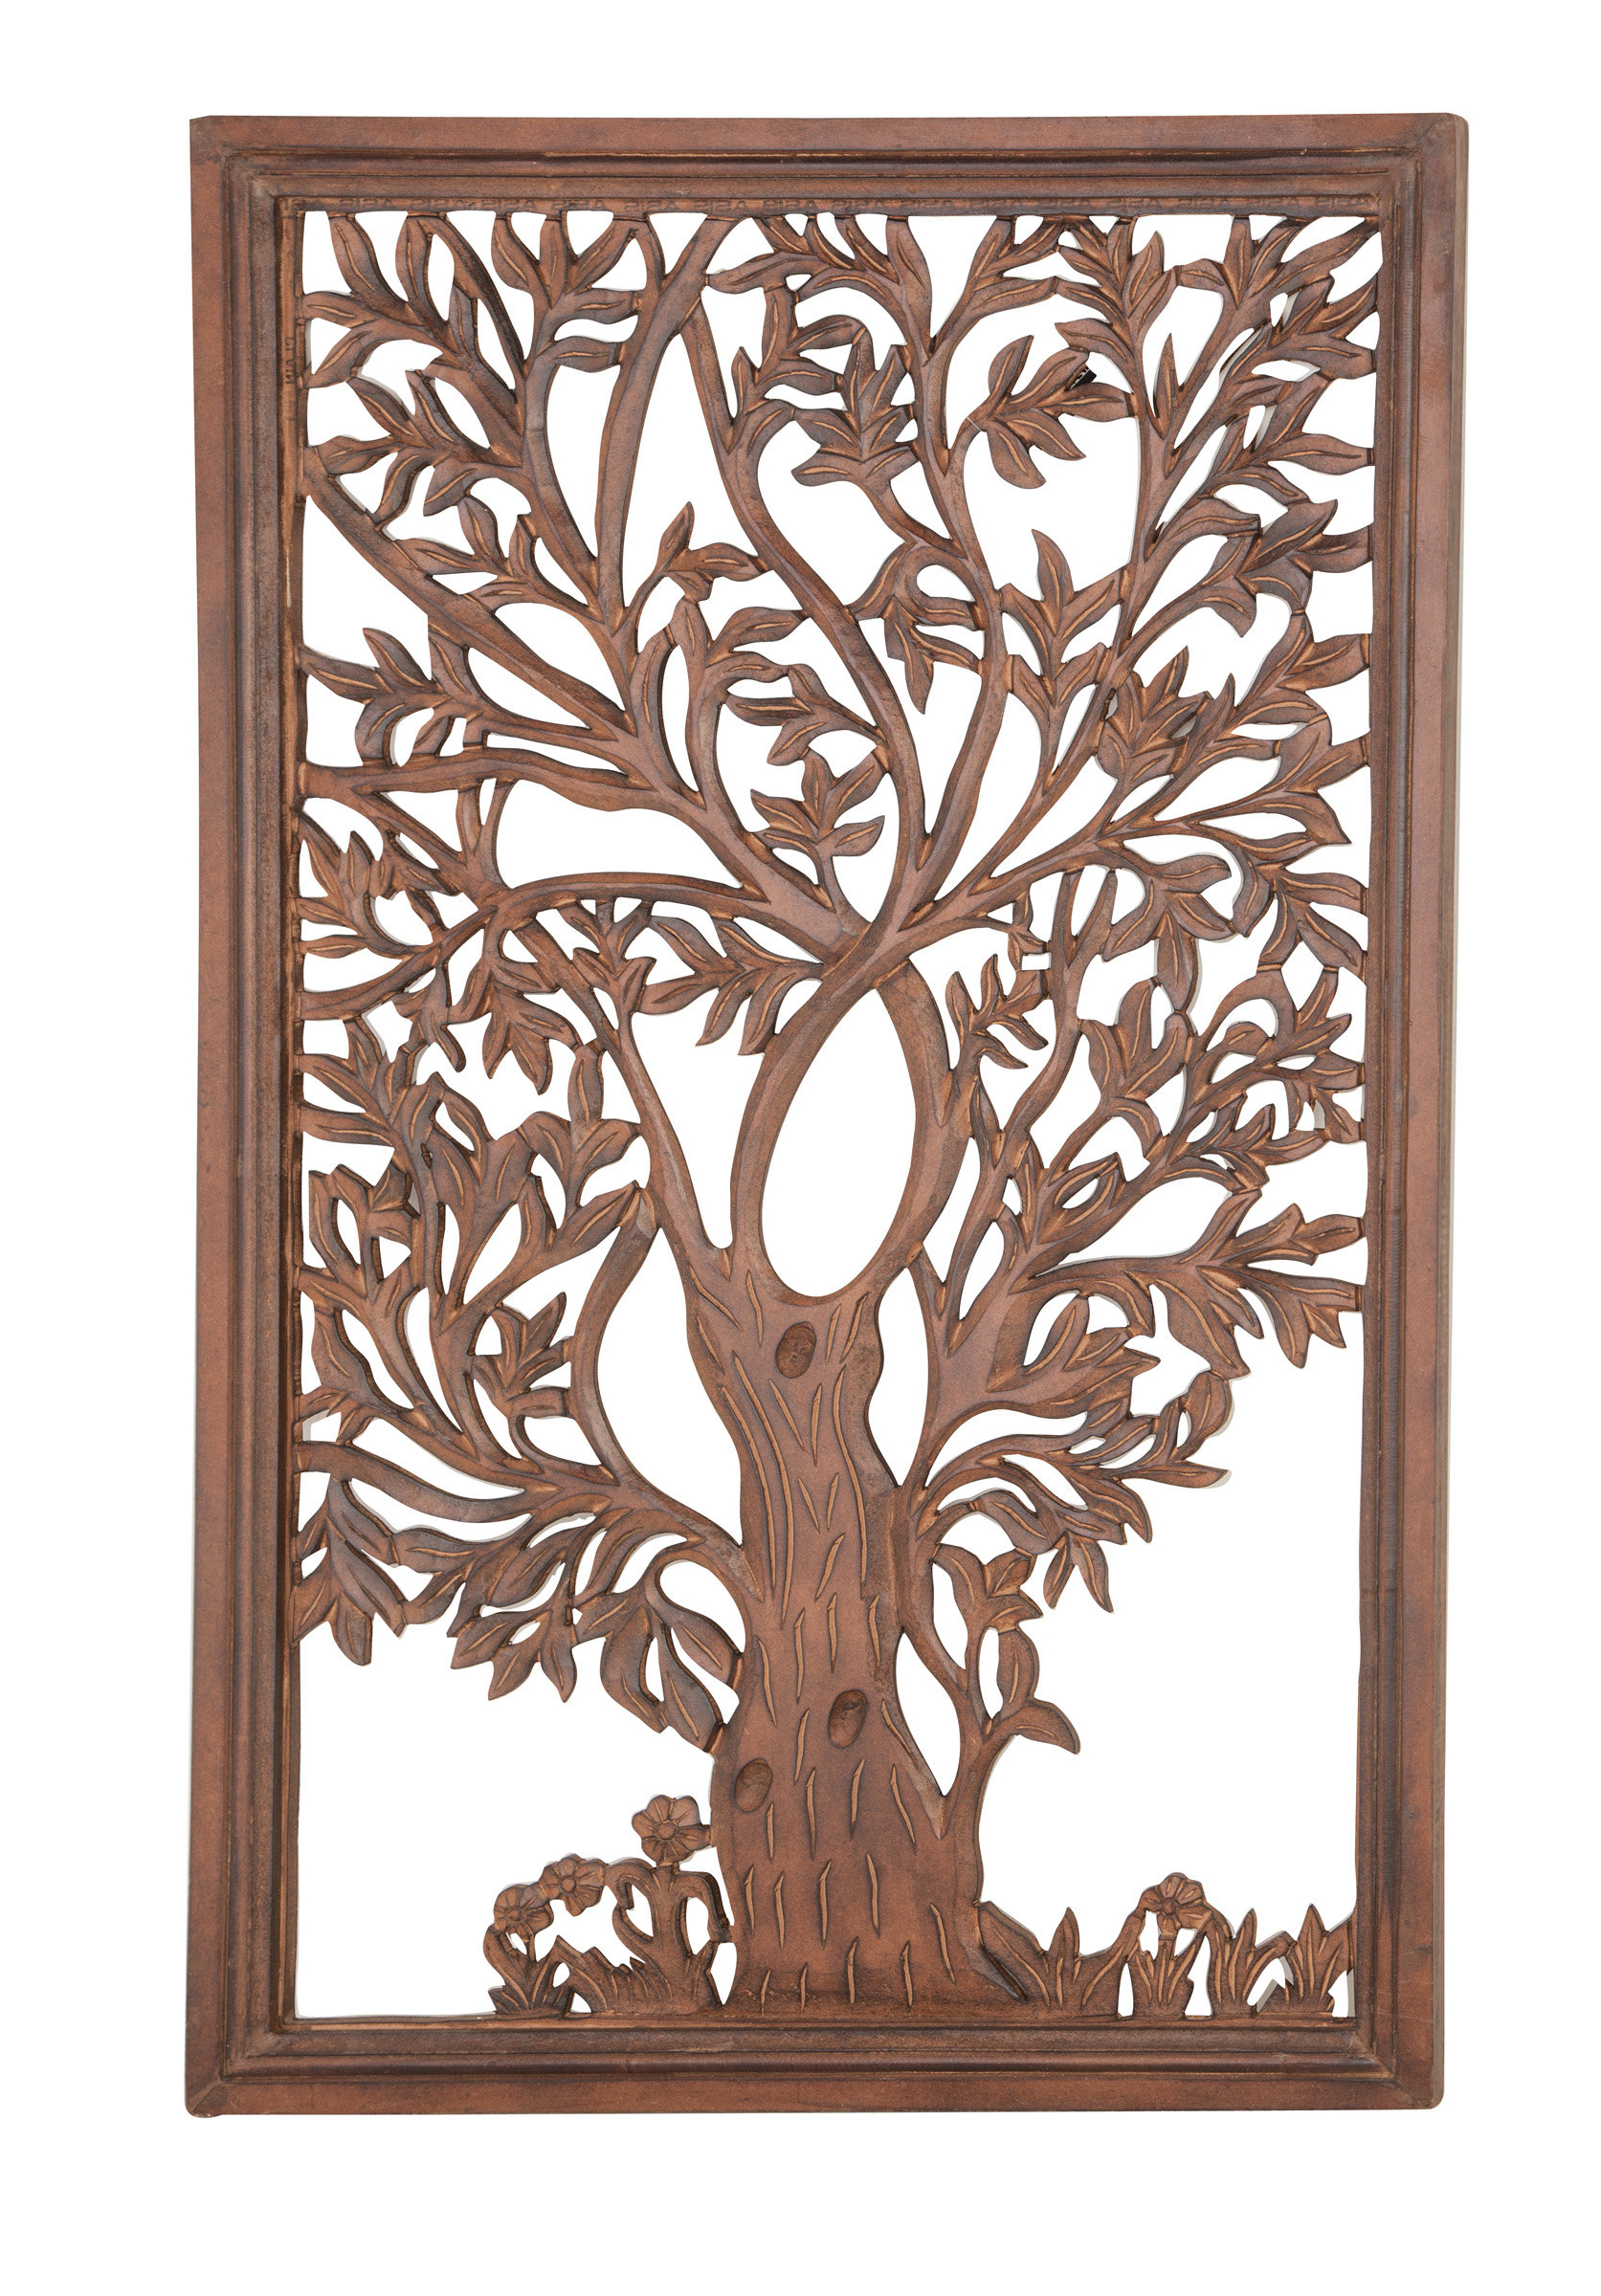 Tree Of Life Wall Decor By Red Barrel Studio In Well Liked Red Barrel Studio Rectangular Wood Carved Tree Wall Decor (Gallery 19 of 20)